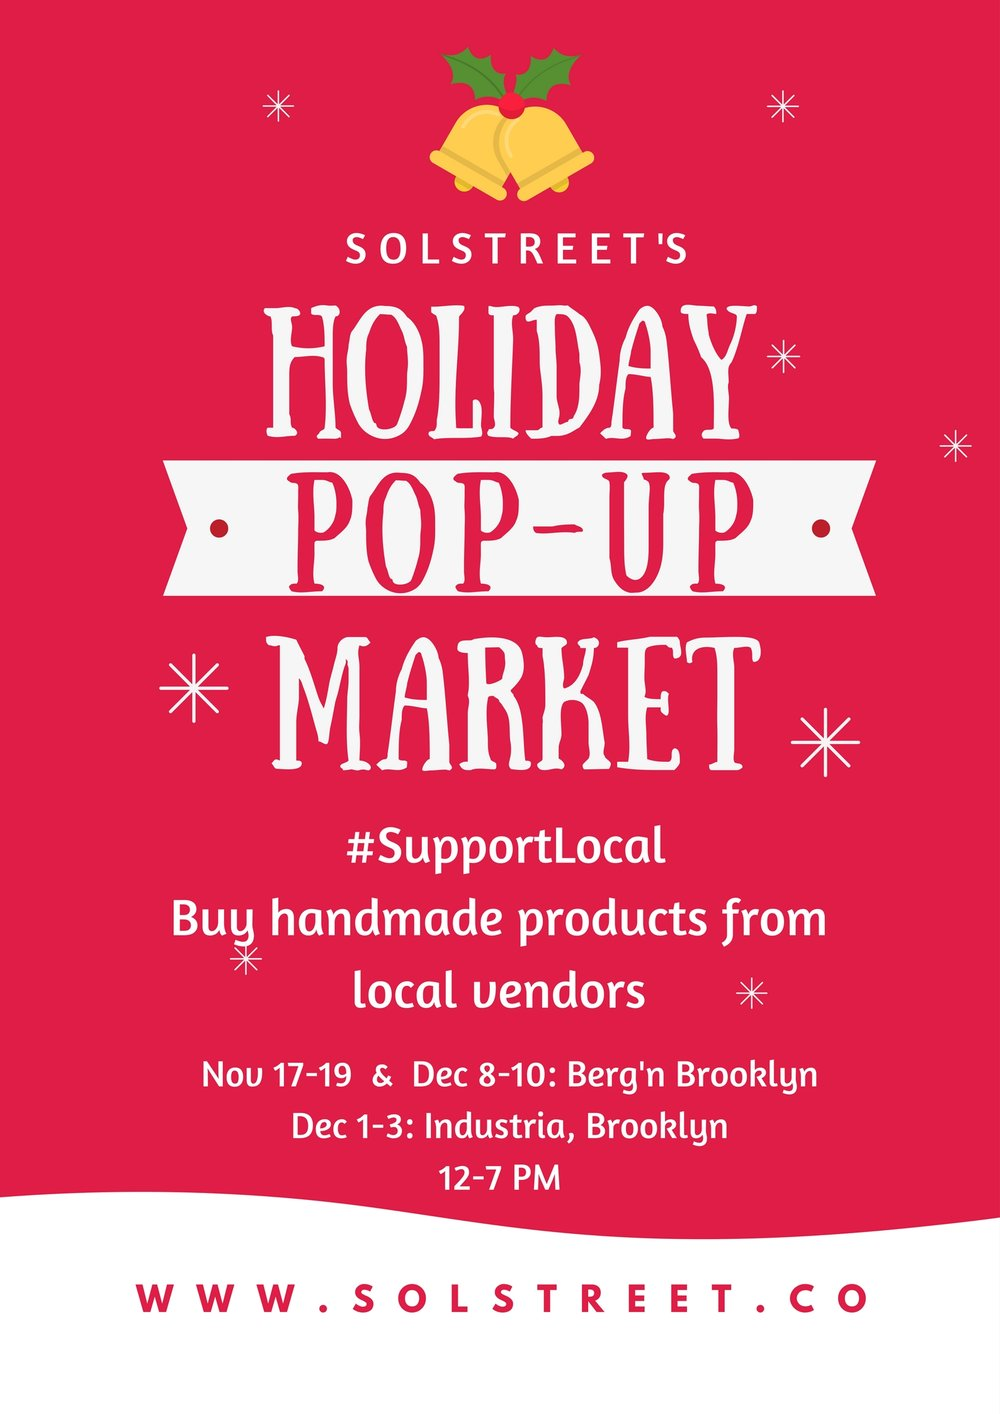 Solstreet PopUp - Grab a glass of beer and indulge in an artsy showcase of local handmade & sustainable products from fellow New Yorkers. Rub shoulders with some amazing influencers who shape the personal fashion and lifestyle landscape on social media. At our markets, there will be a variety of local brands selling Home Decor, Sustainable Fashion, Handmade Jewelry, Accessories & more! Market dates: November 17-19:  Berg'n, BrooklynDecember 1-3:      Industria, BrooklynDecember 8-10:    Berg'n, Brooklyn